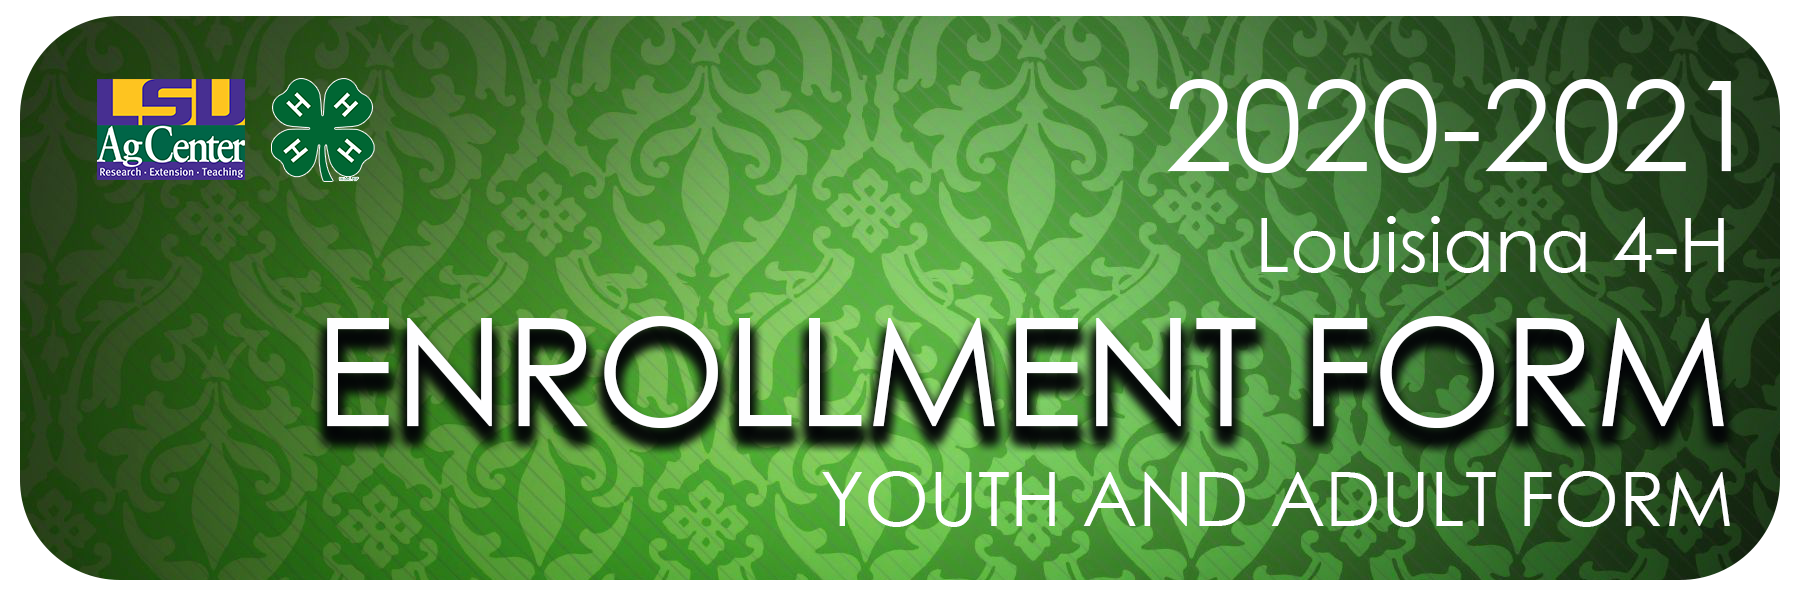 Image Header for Louisiana 4-H Online Enrollment System